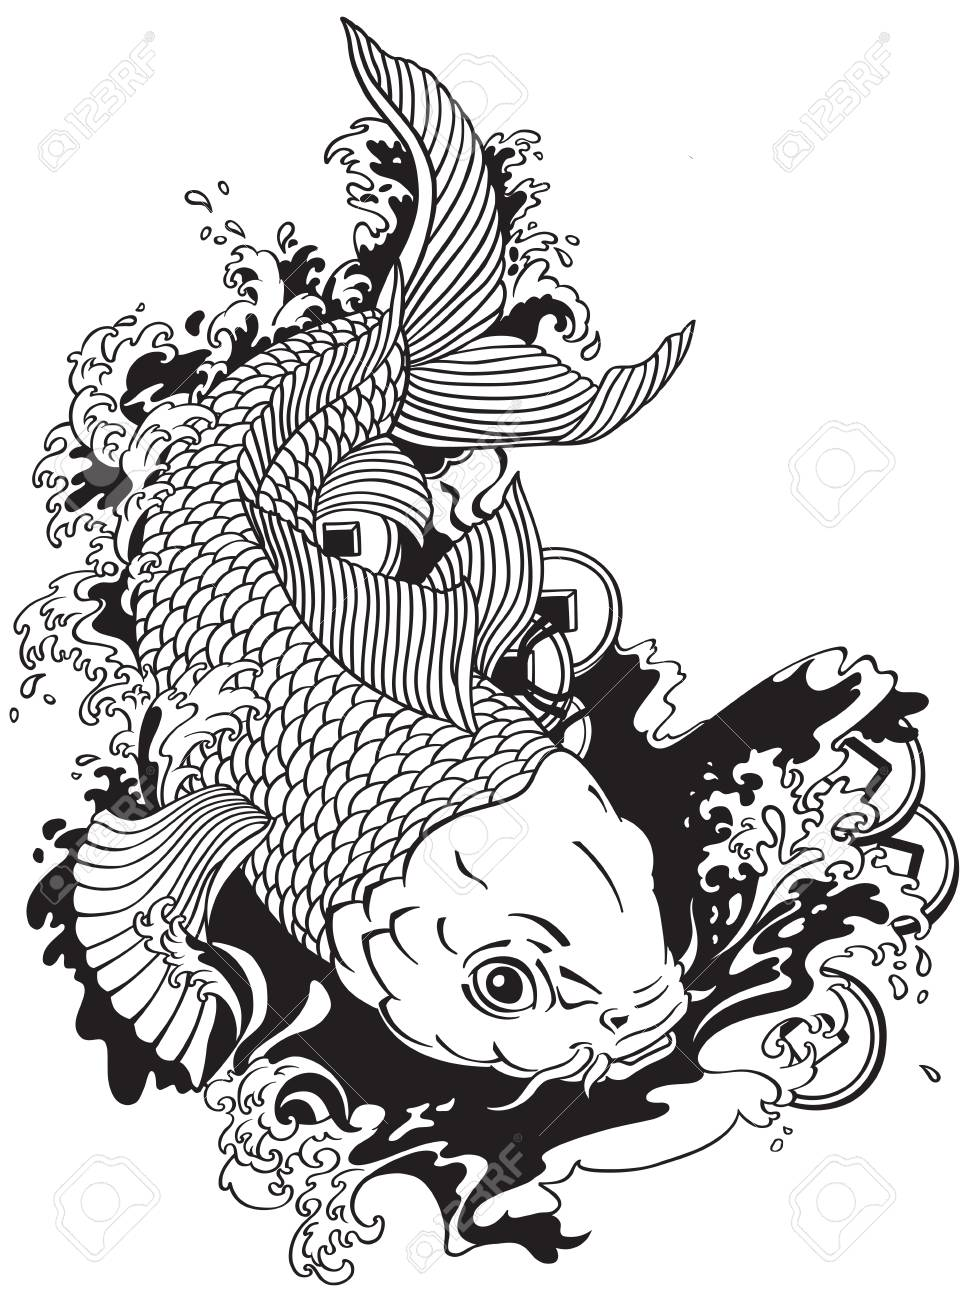 japanese carp koi gold fish swimming in a pond with feng shui money coins . Tattoo style black and white vector illustration - 88478344